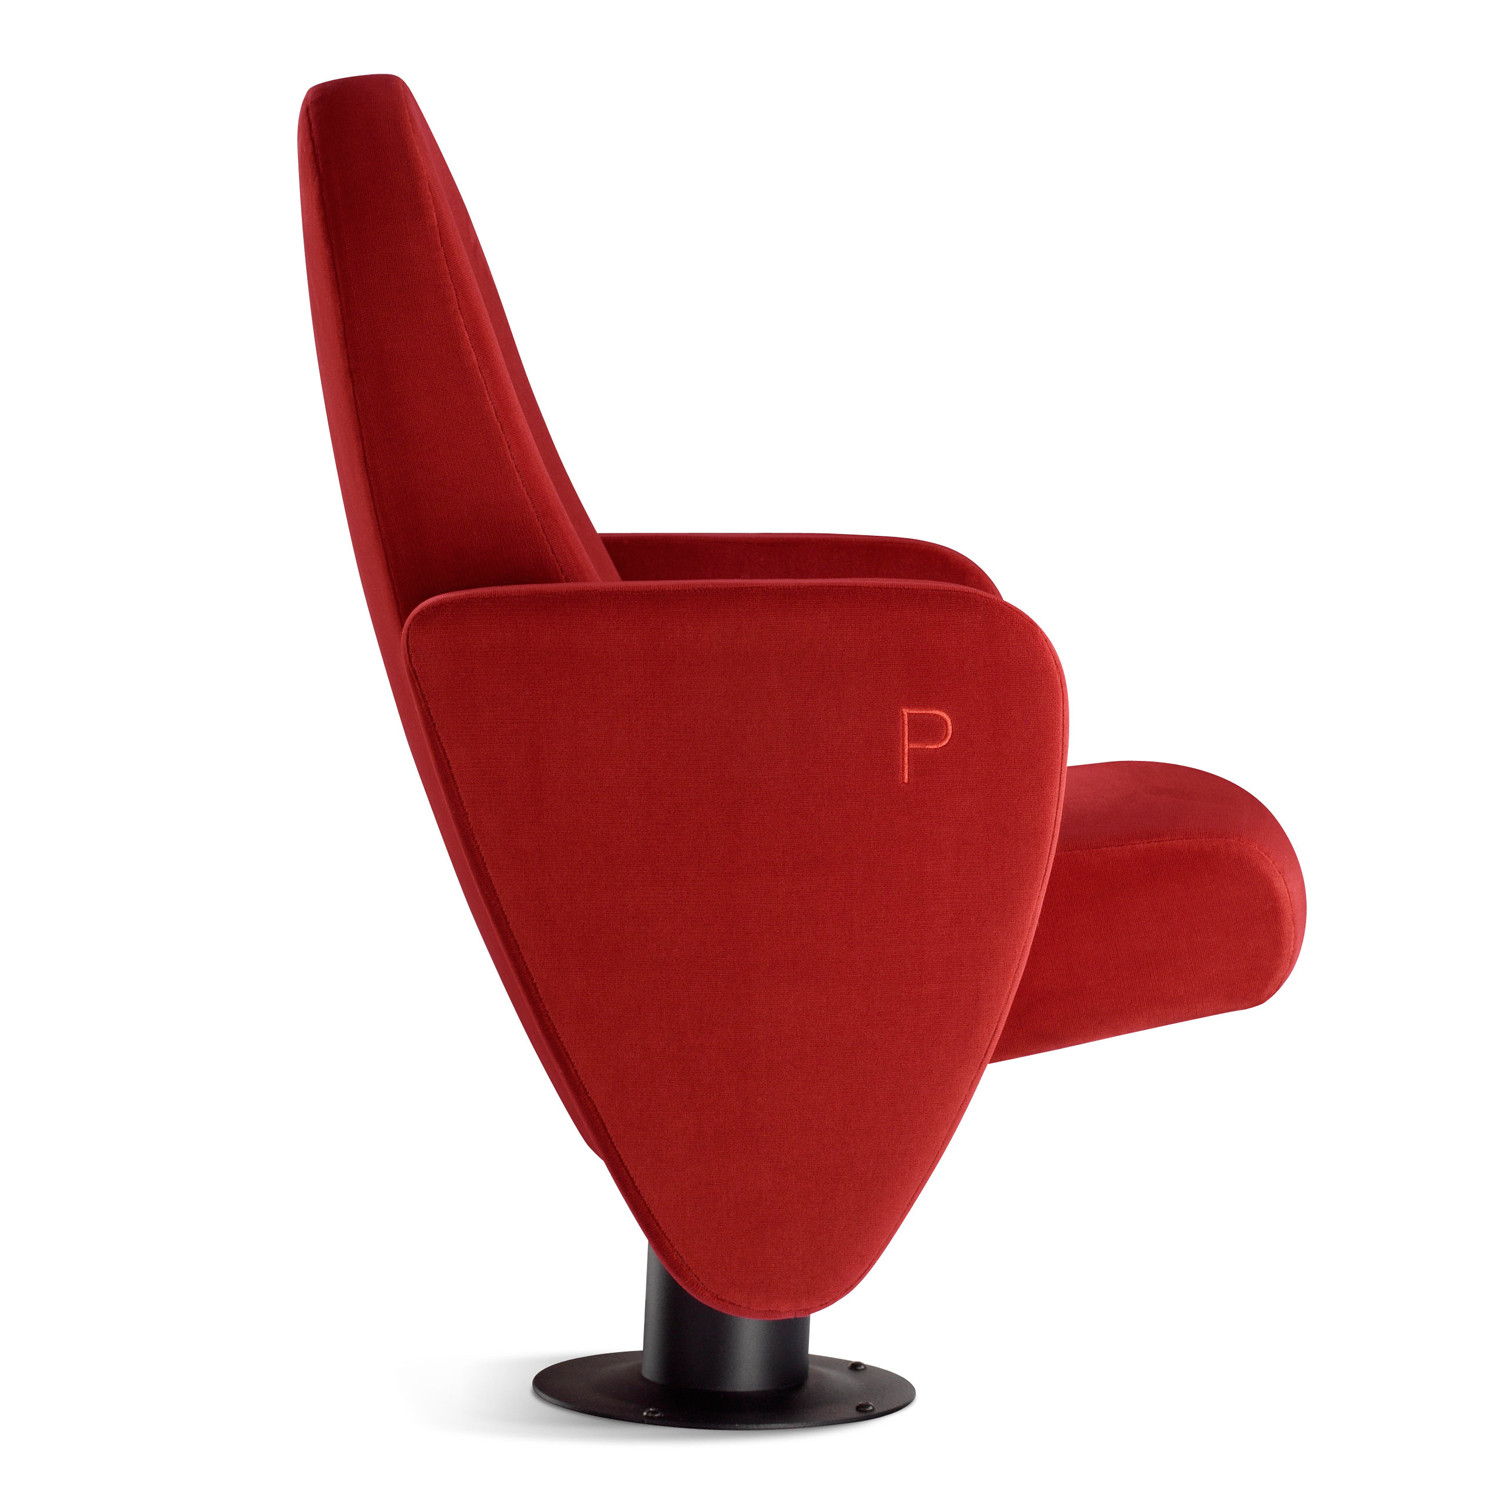 Palladium Upholstered Auditorium Chair profile